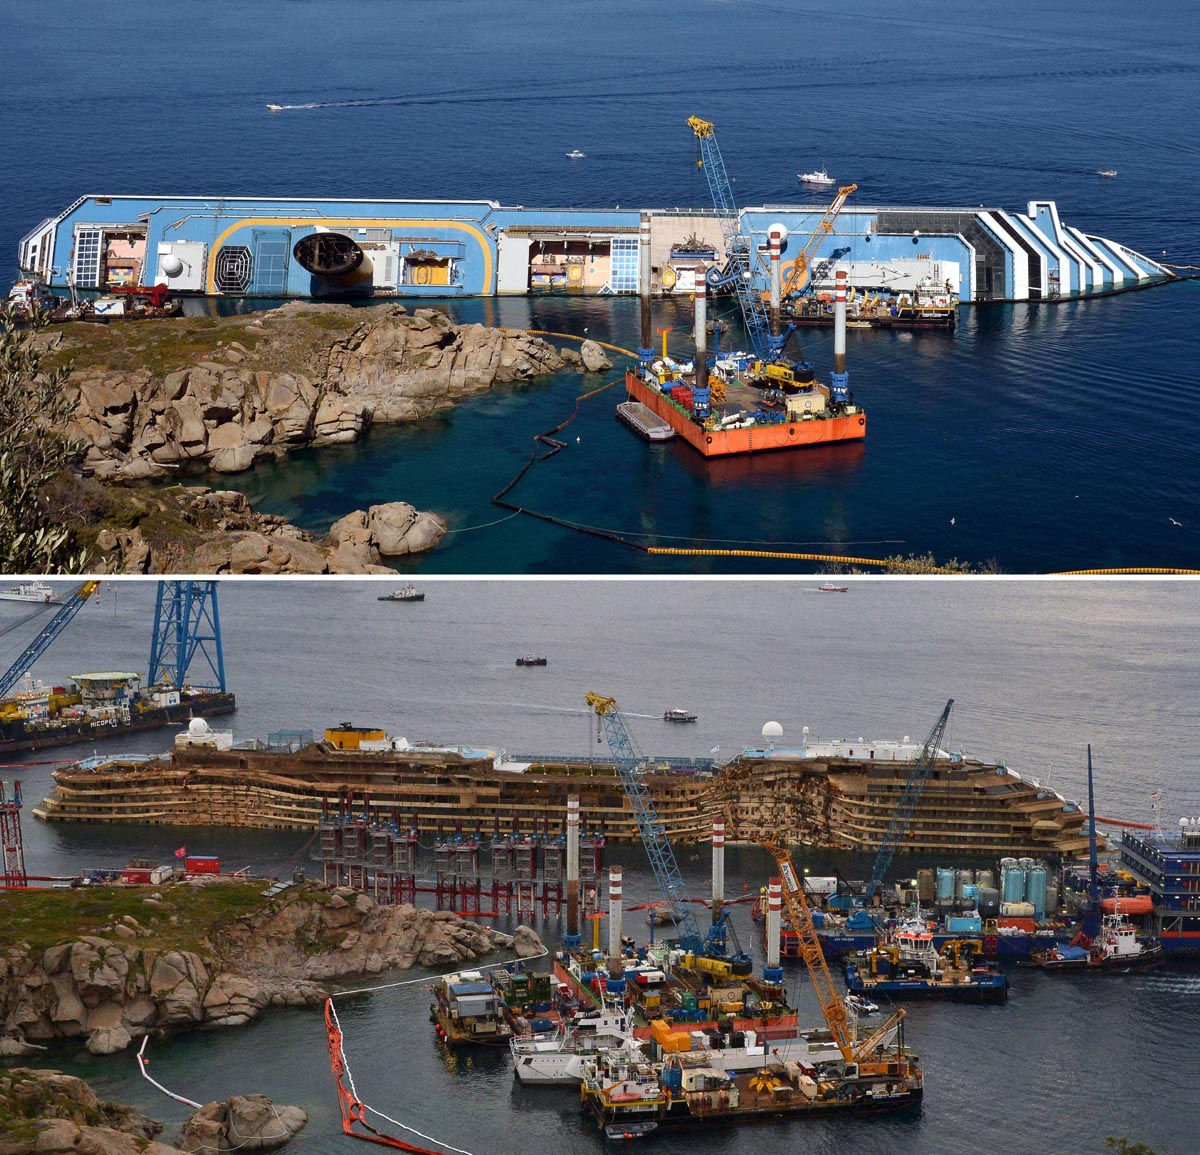 Costa Concordia turned upright off coast of Italy